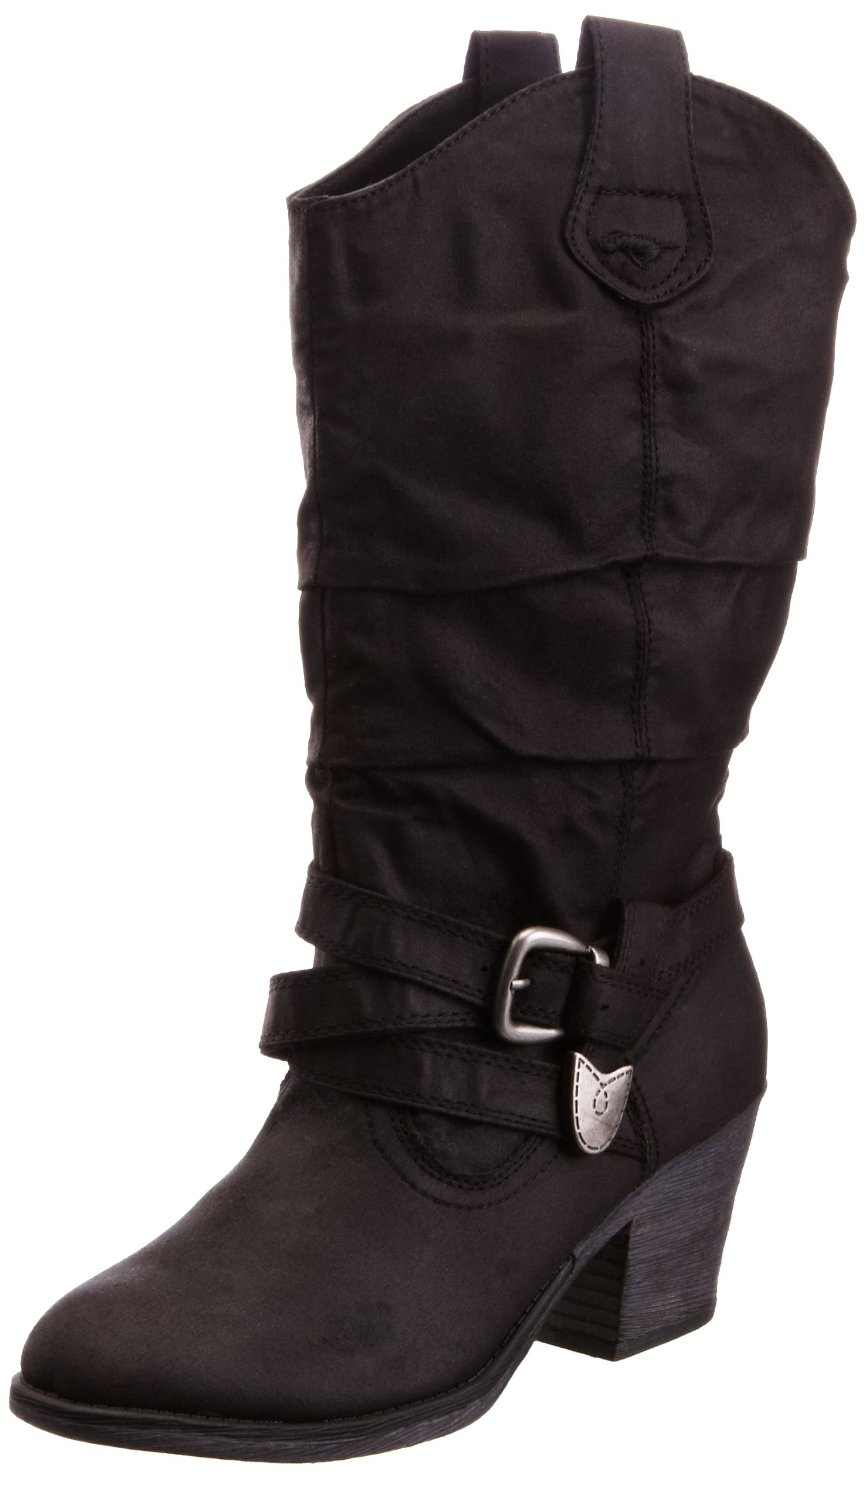 Rocket-Dog-Sidestep-Black-Fabric-New-Womens-Hi-Pull-On-Cowboy-Winter-Shoes-Boots